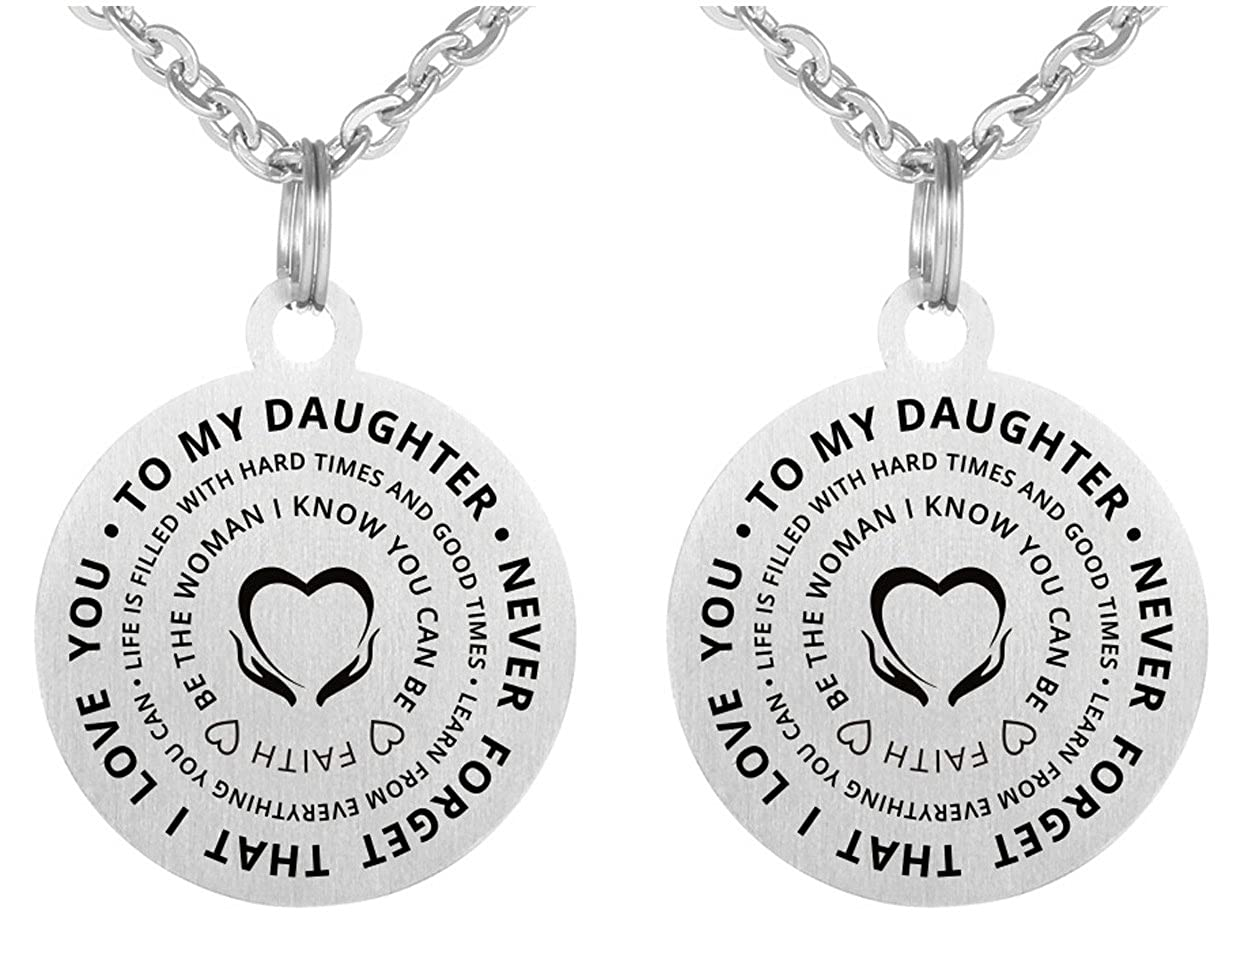 Inspirational Gift to My Daughter Never Forget That I Love You Stainless Steel Dog Tag Key Chain Necklace Elefan Cornelia Jewelry EFKXLSL141